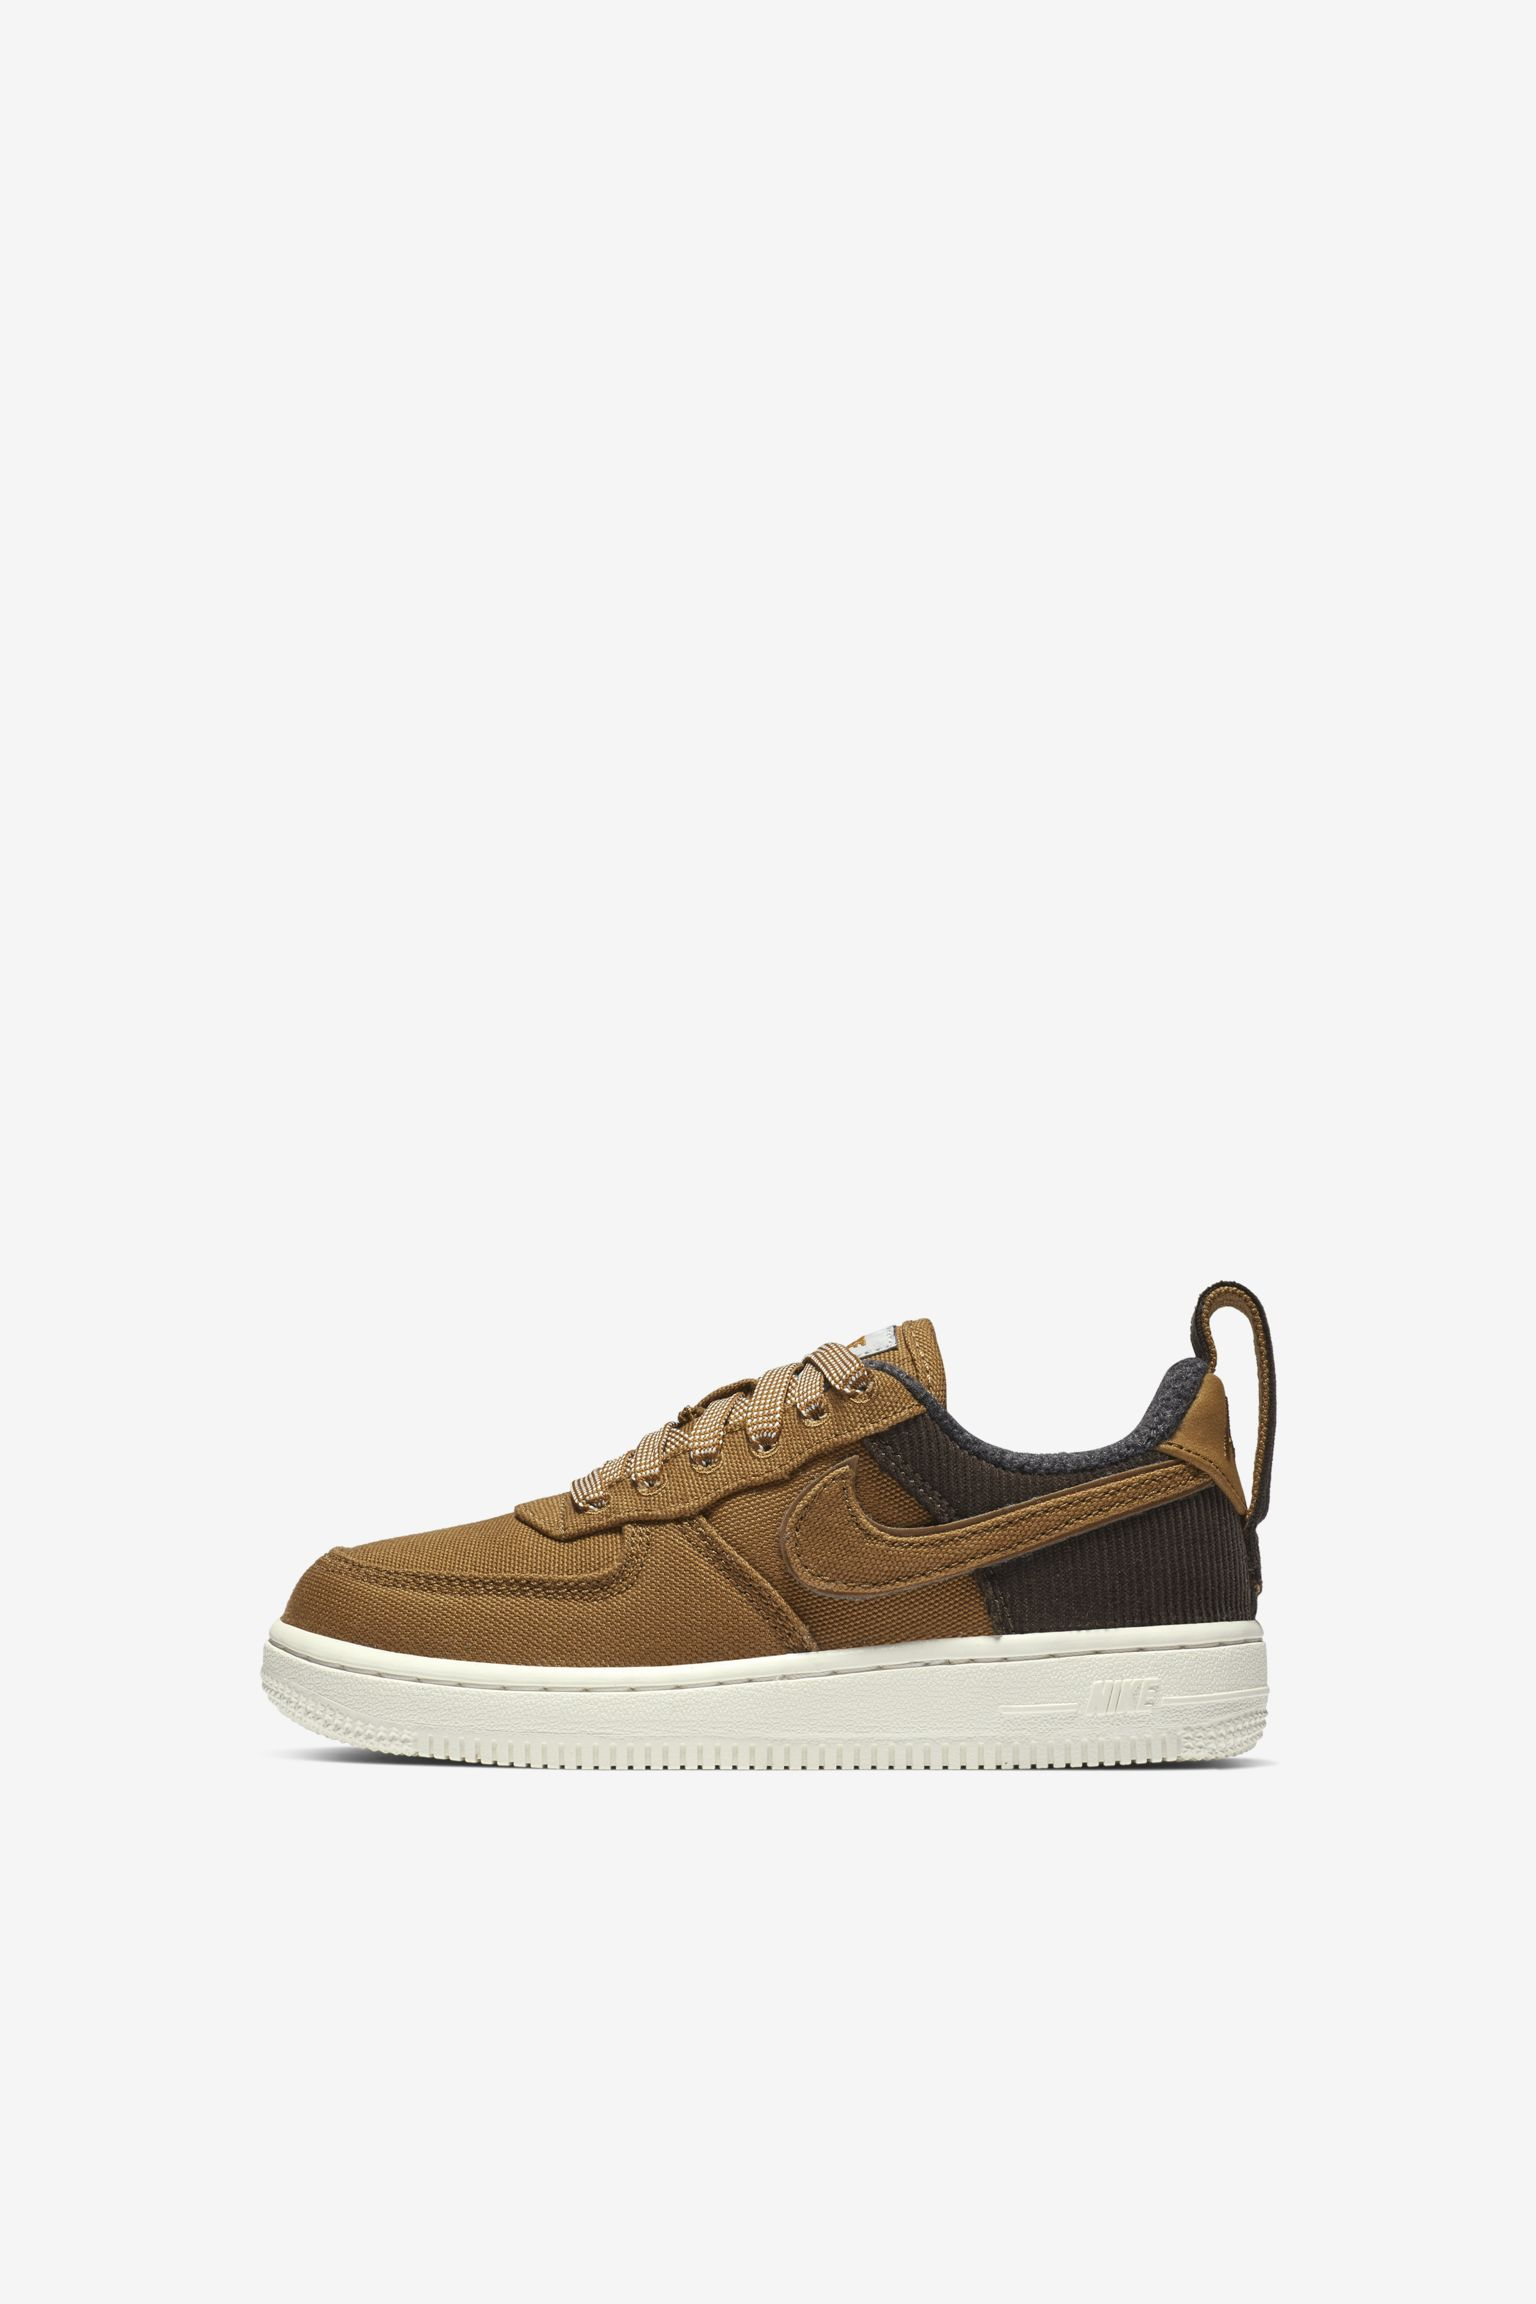 Nike Air Force 1 'Carhartt WIP' Release Date